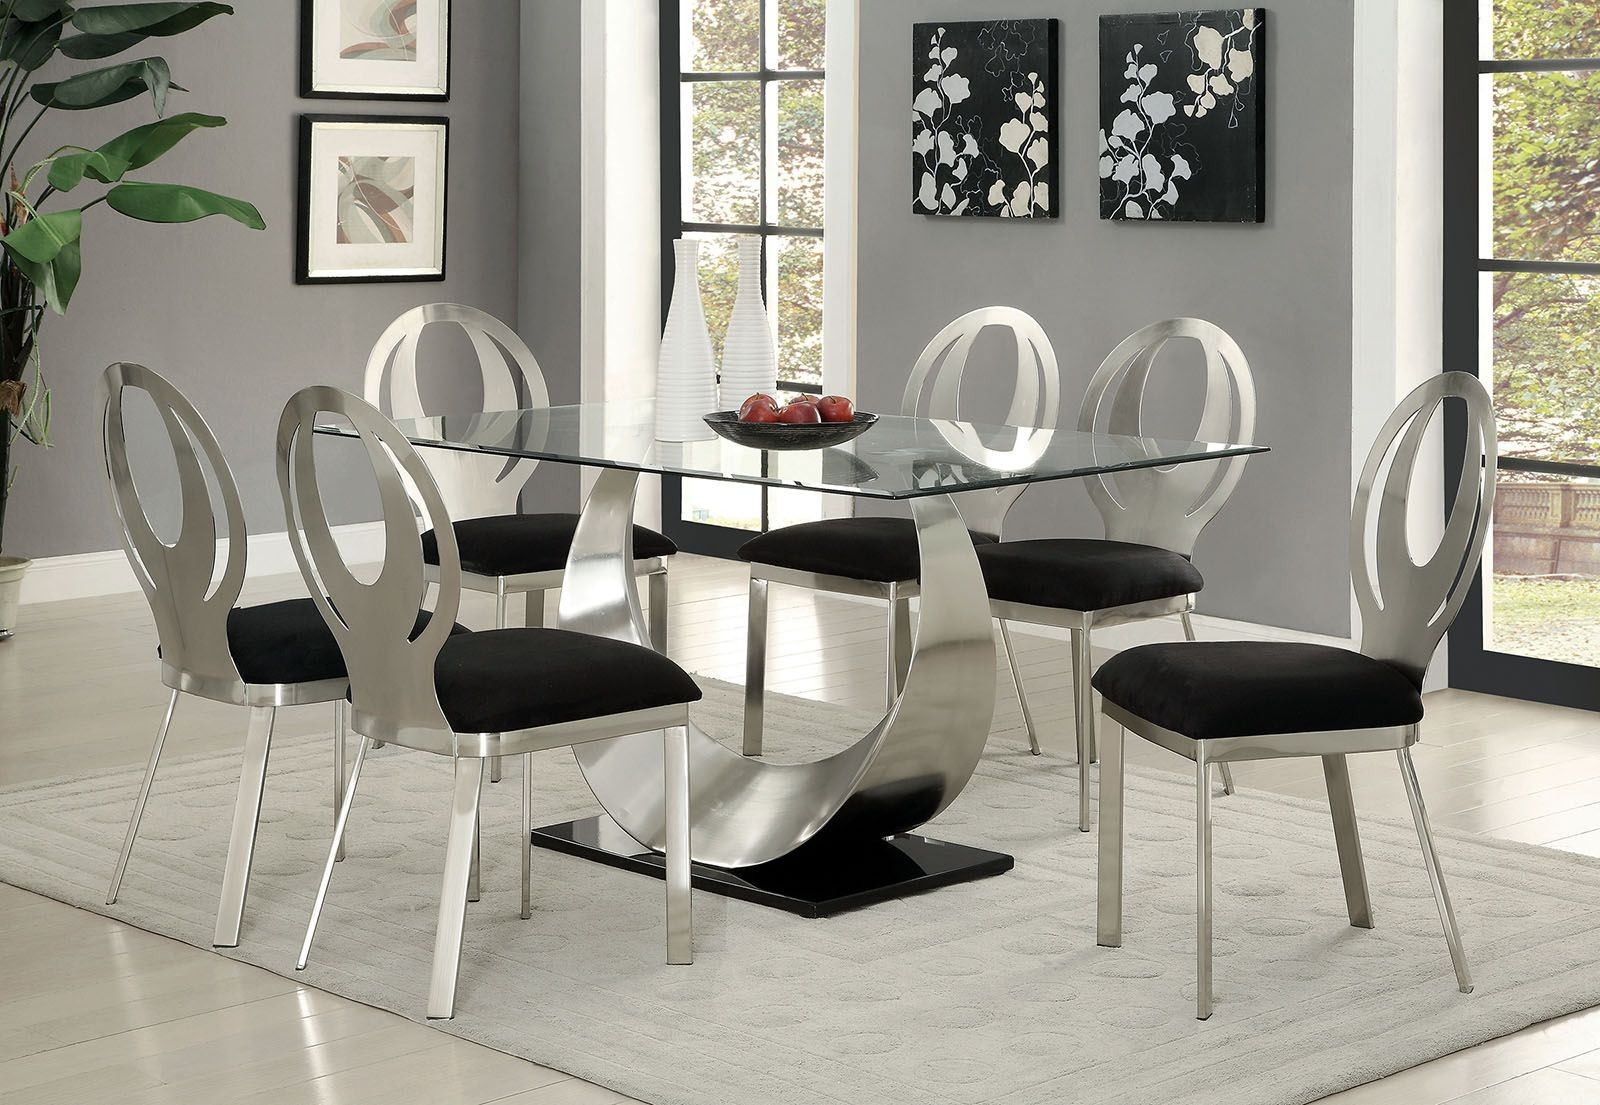 orla silver and black rectangular dining room set cm3726t